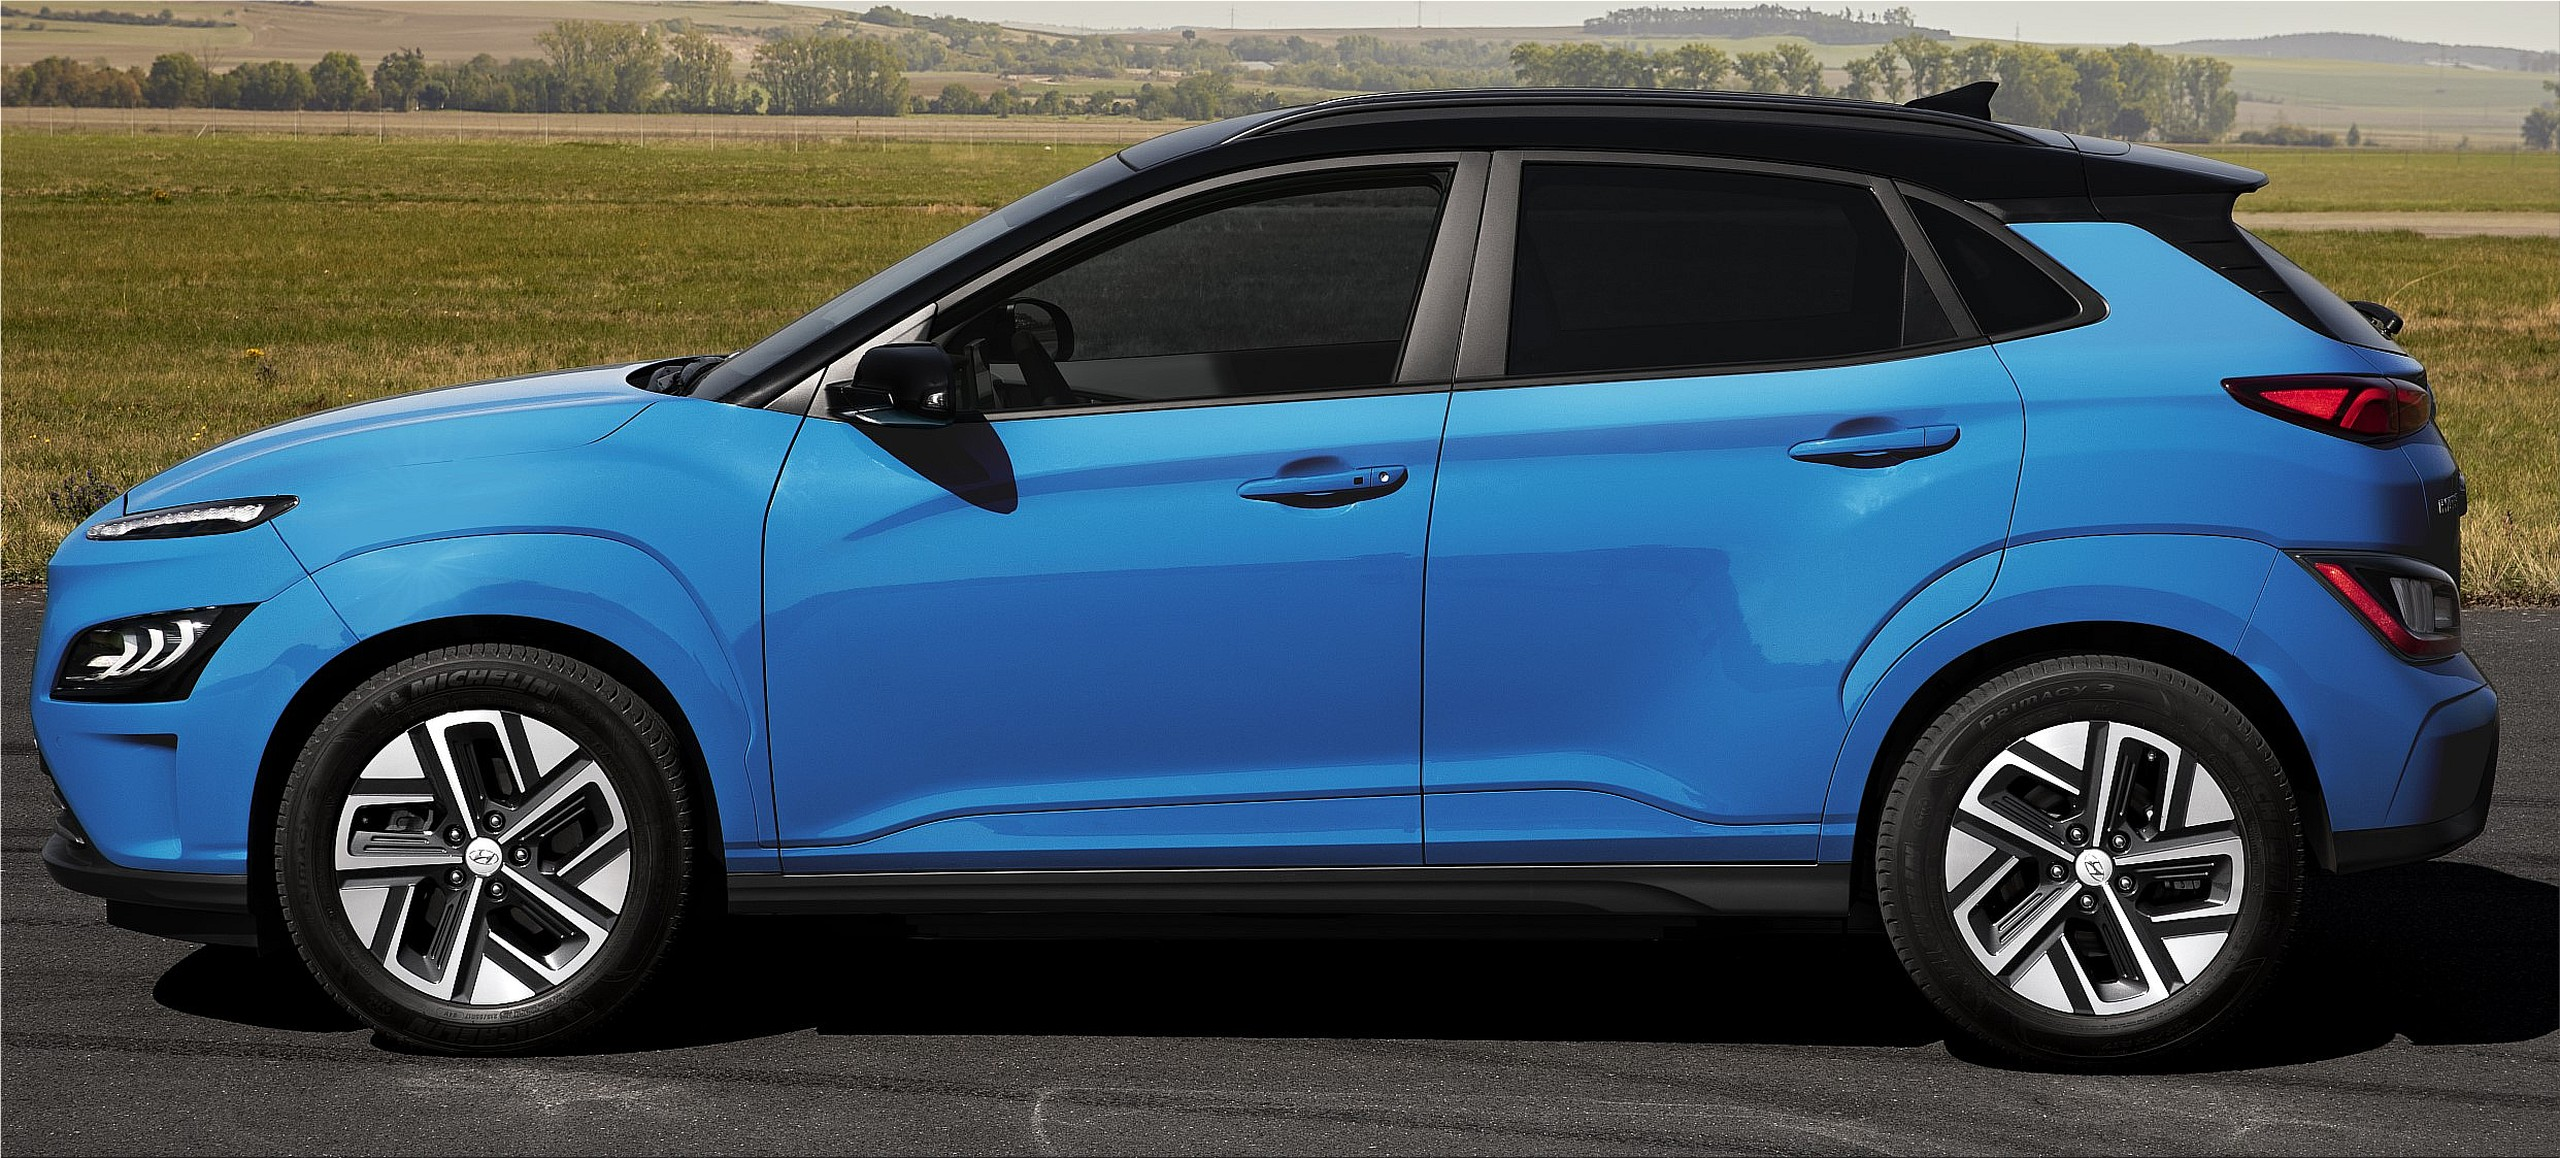 The price list for the 2021 Hyundai KONA Electric